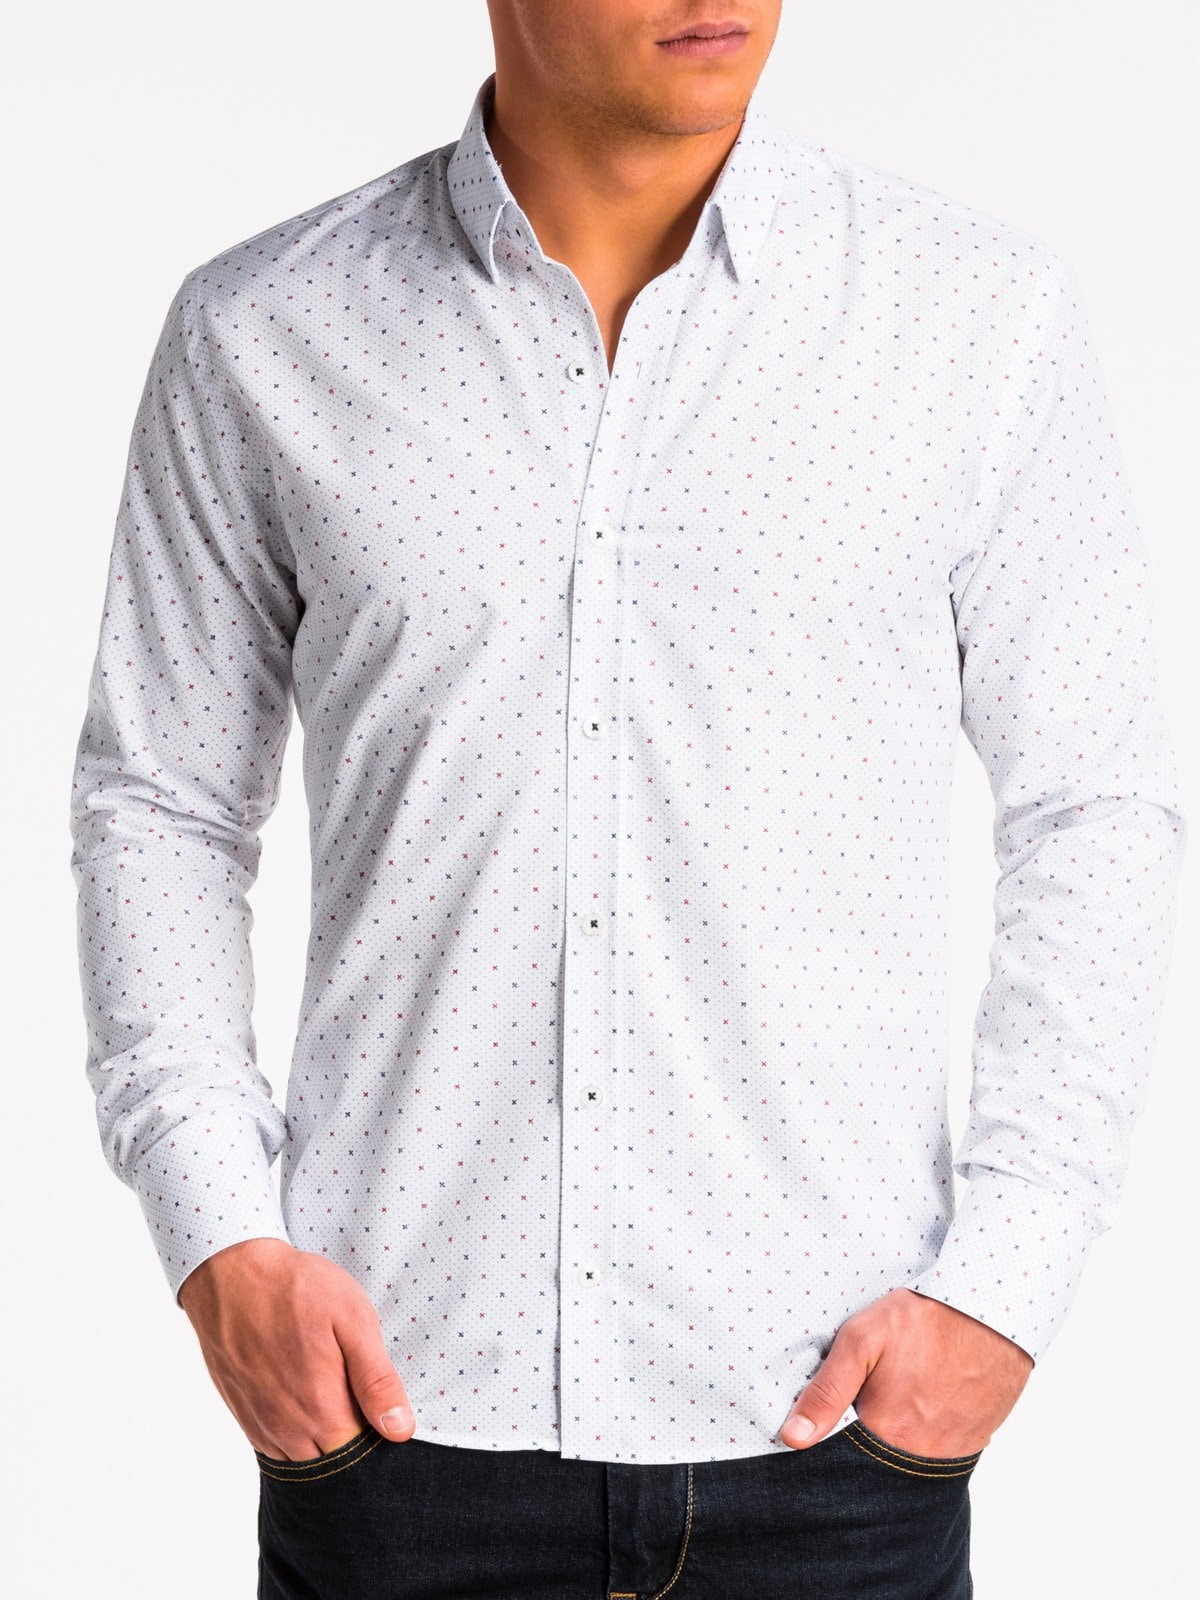 Ombre Clothing Men's elegant shirt with long sleeves K470